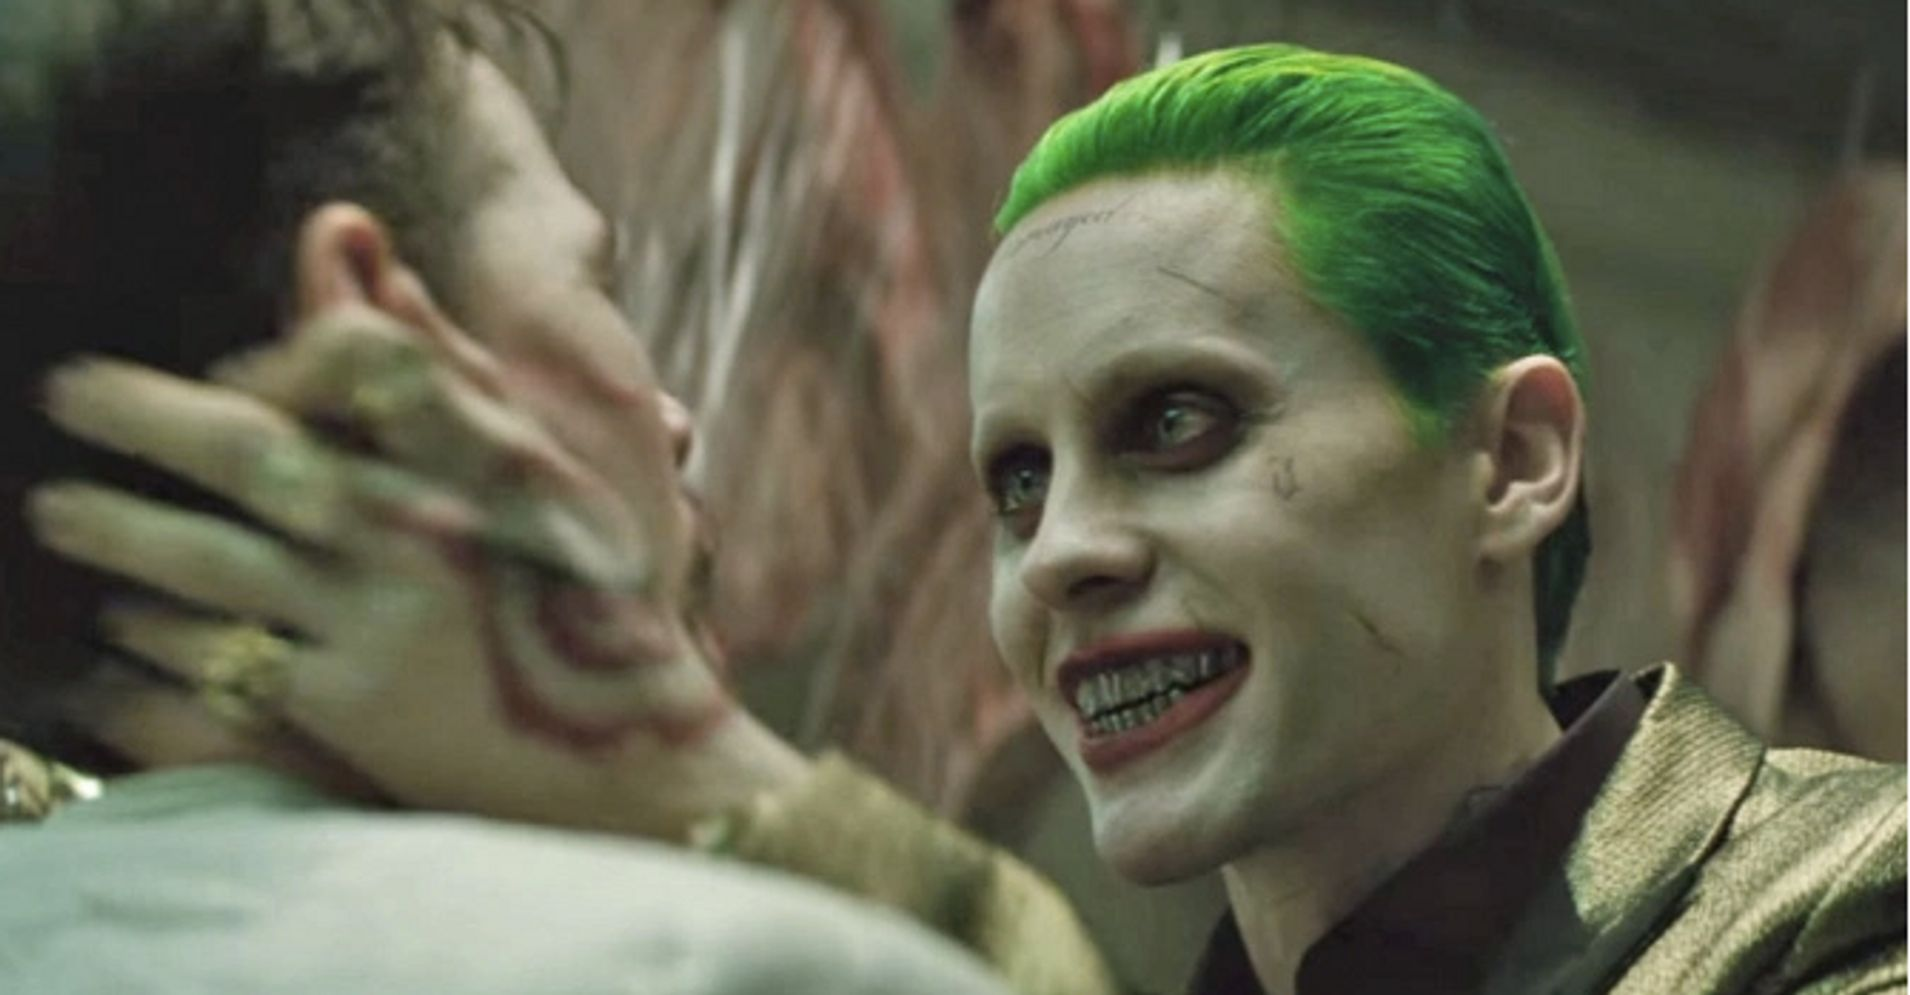 Reddit Joker Movie Controversy: This Image Could Explain Why The Joker's Scenes Were Cut